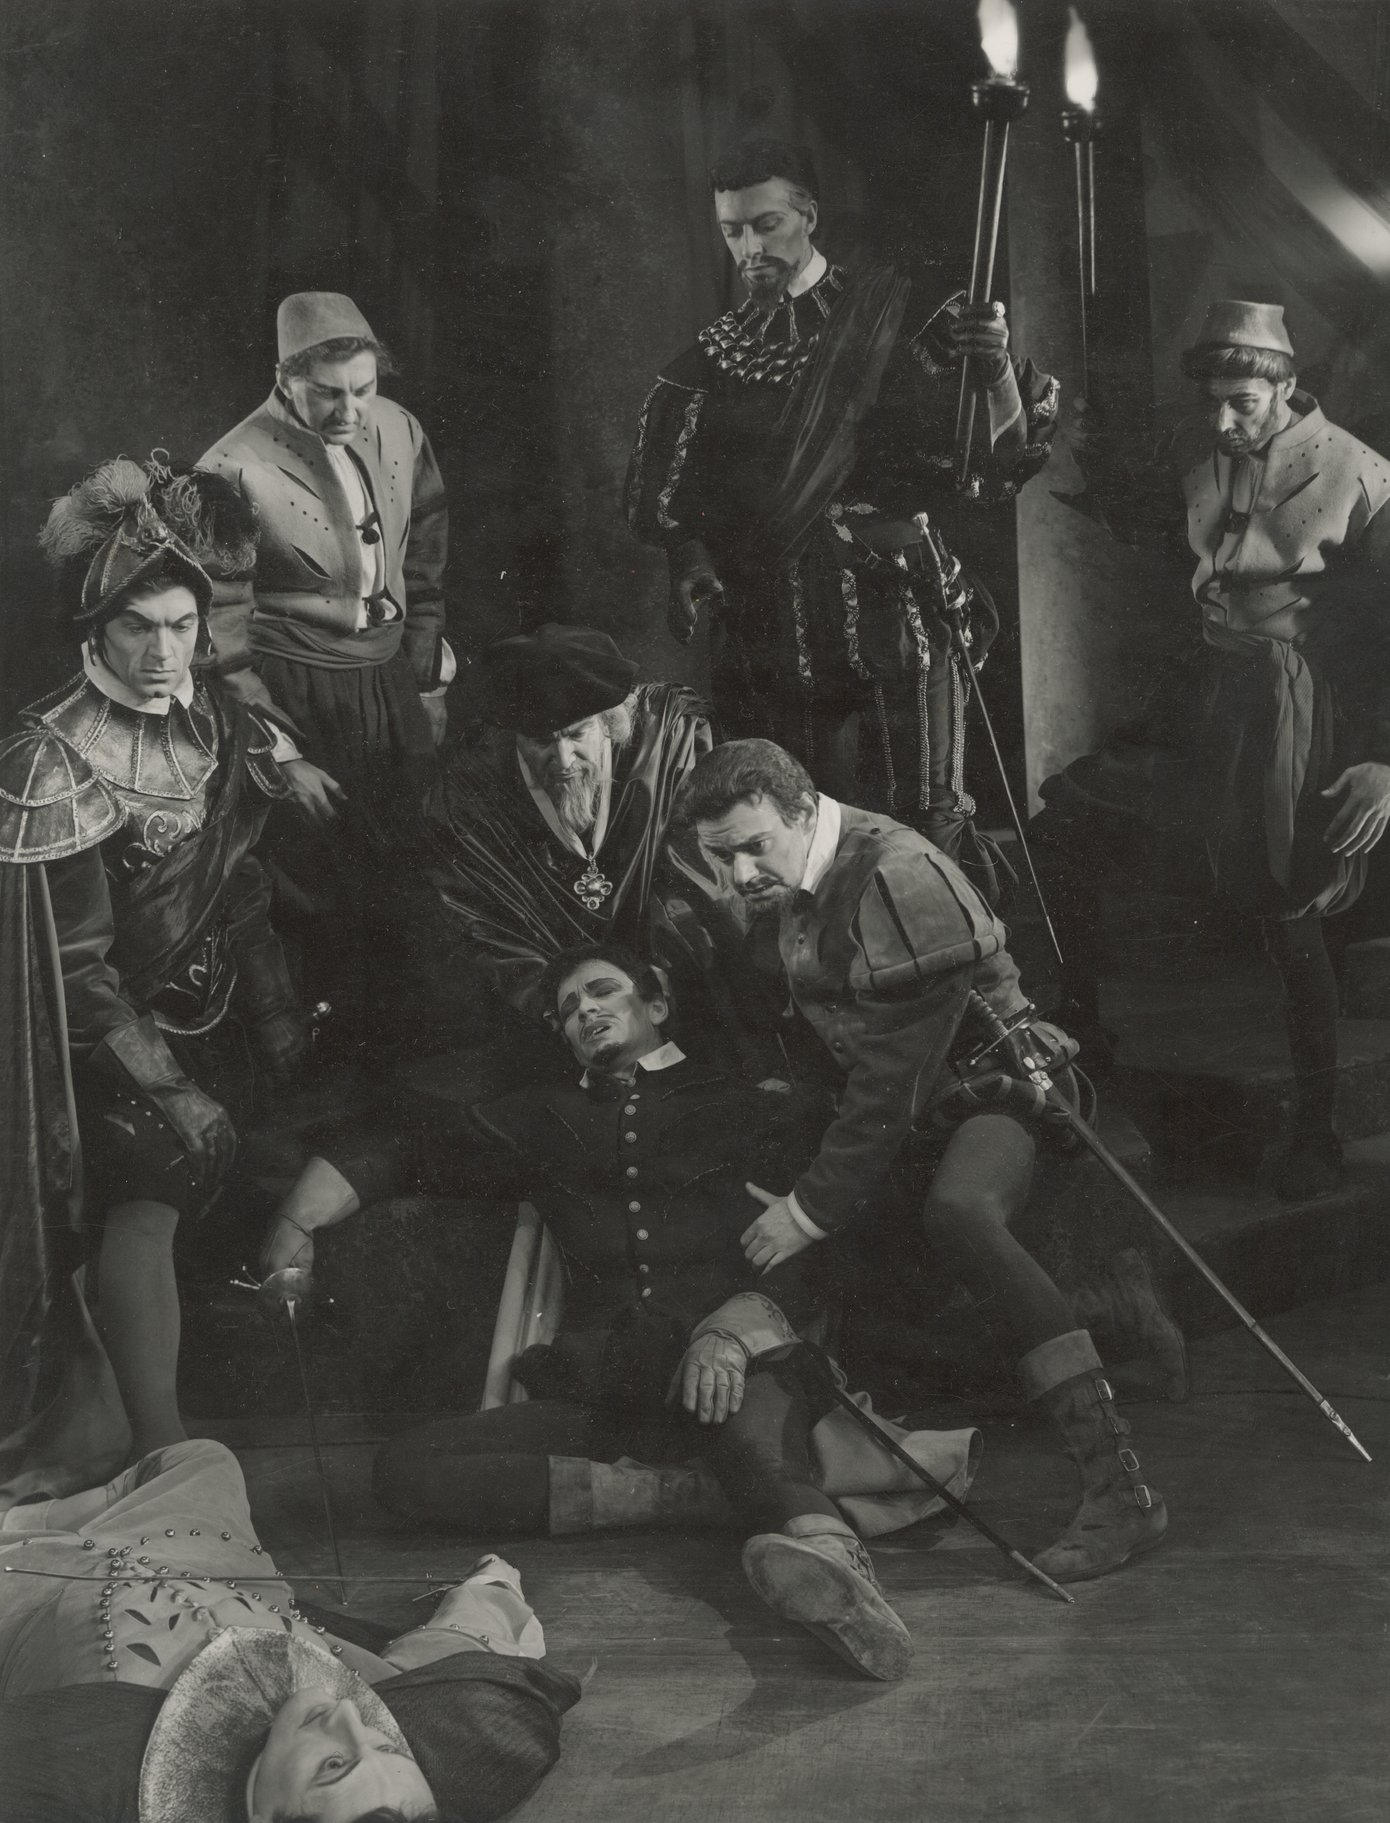 Othello_ 1954_ Gratiano_ Lodovico and Iago discover the wounded Cassio and Roderigo_1954_Photo by Angus McBean _c_ RSC_33282